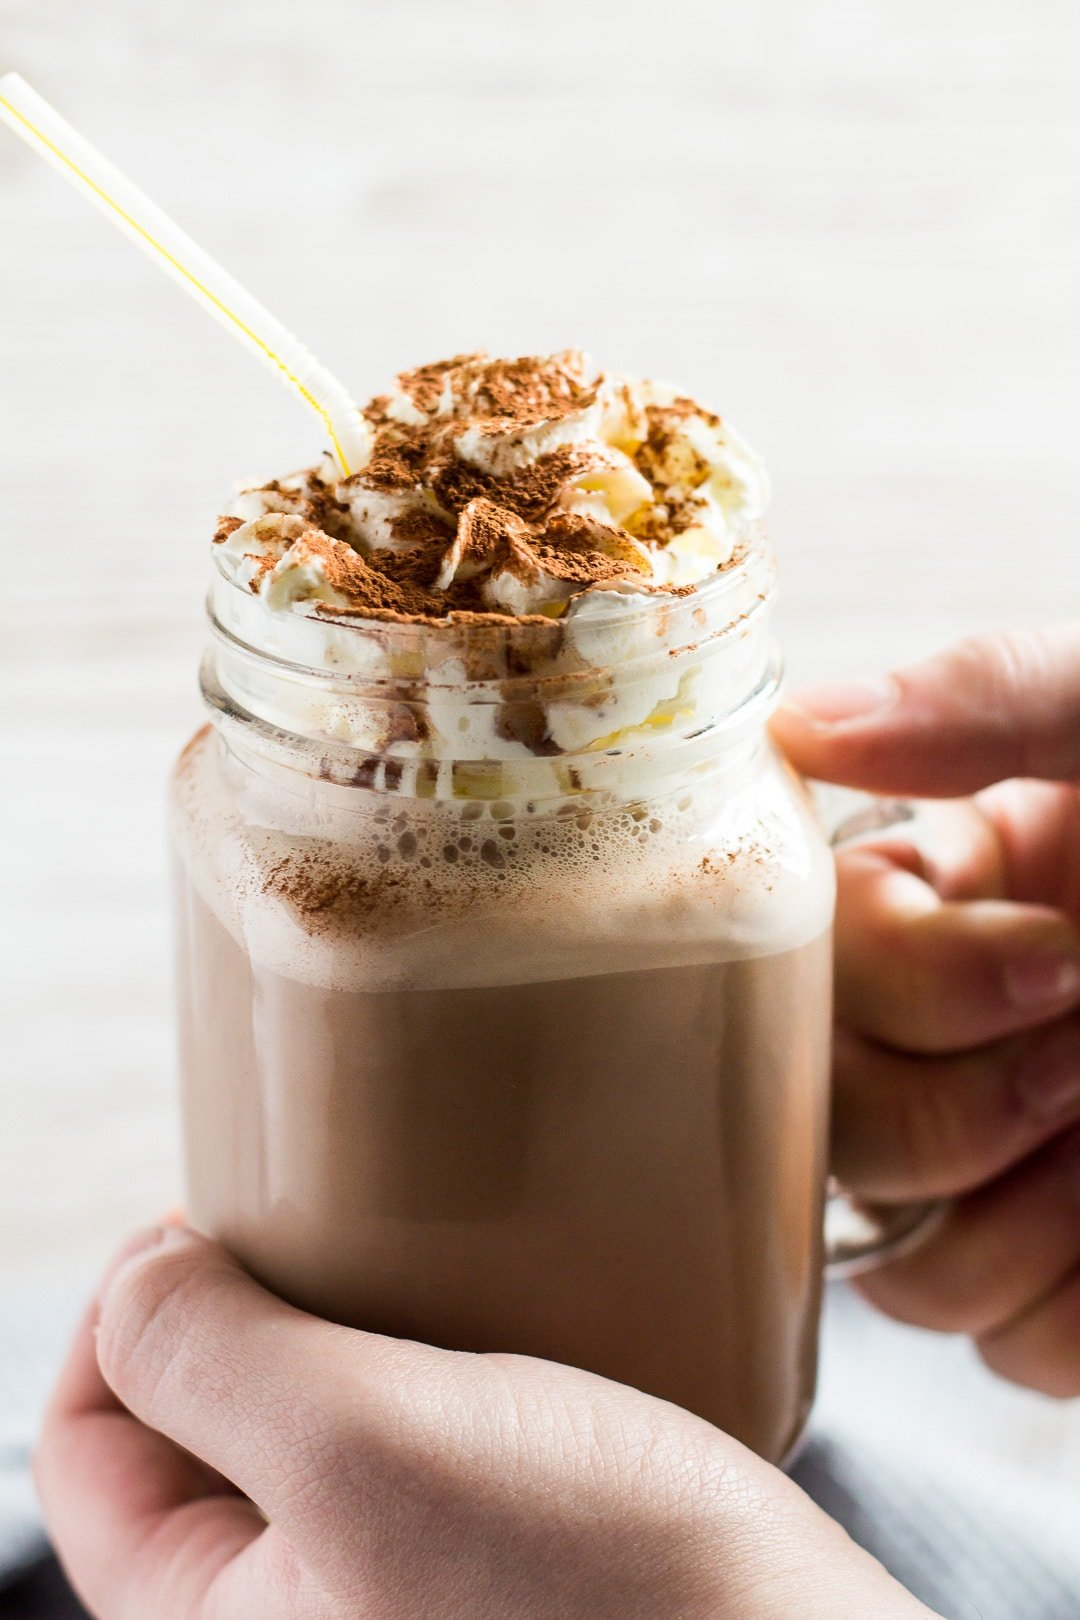 A glass mason jar filled with Chocolate Nesquik Milkshake topped with whipped cream being held by hand.